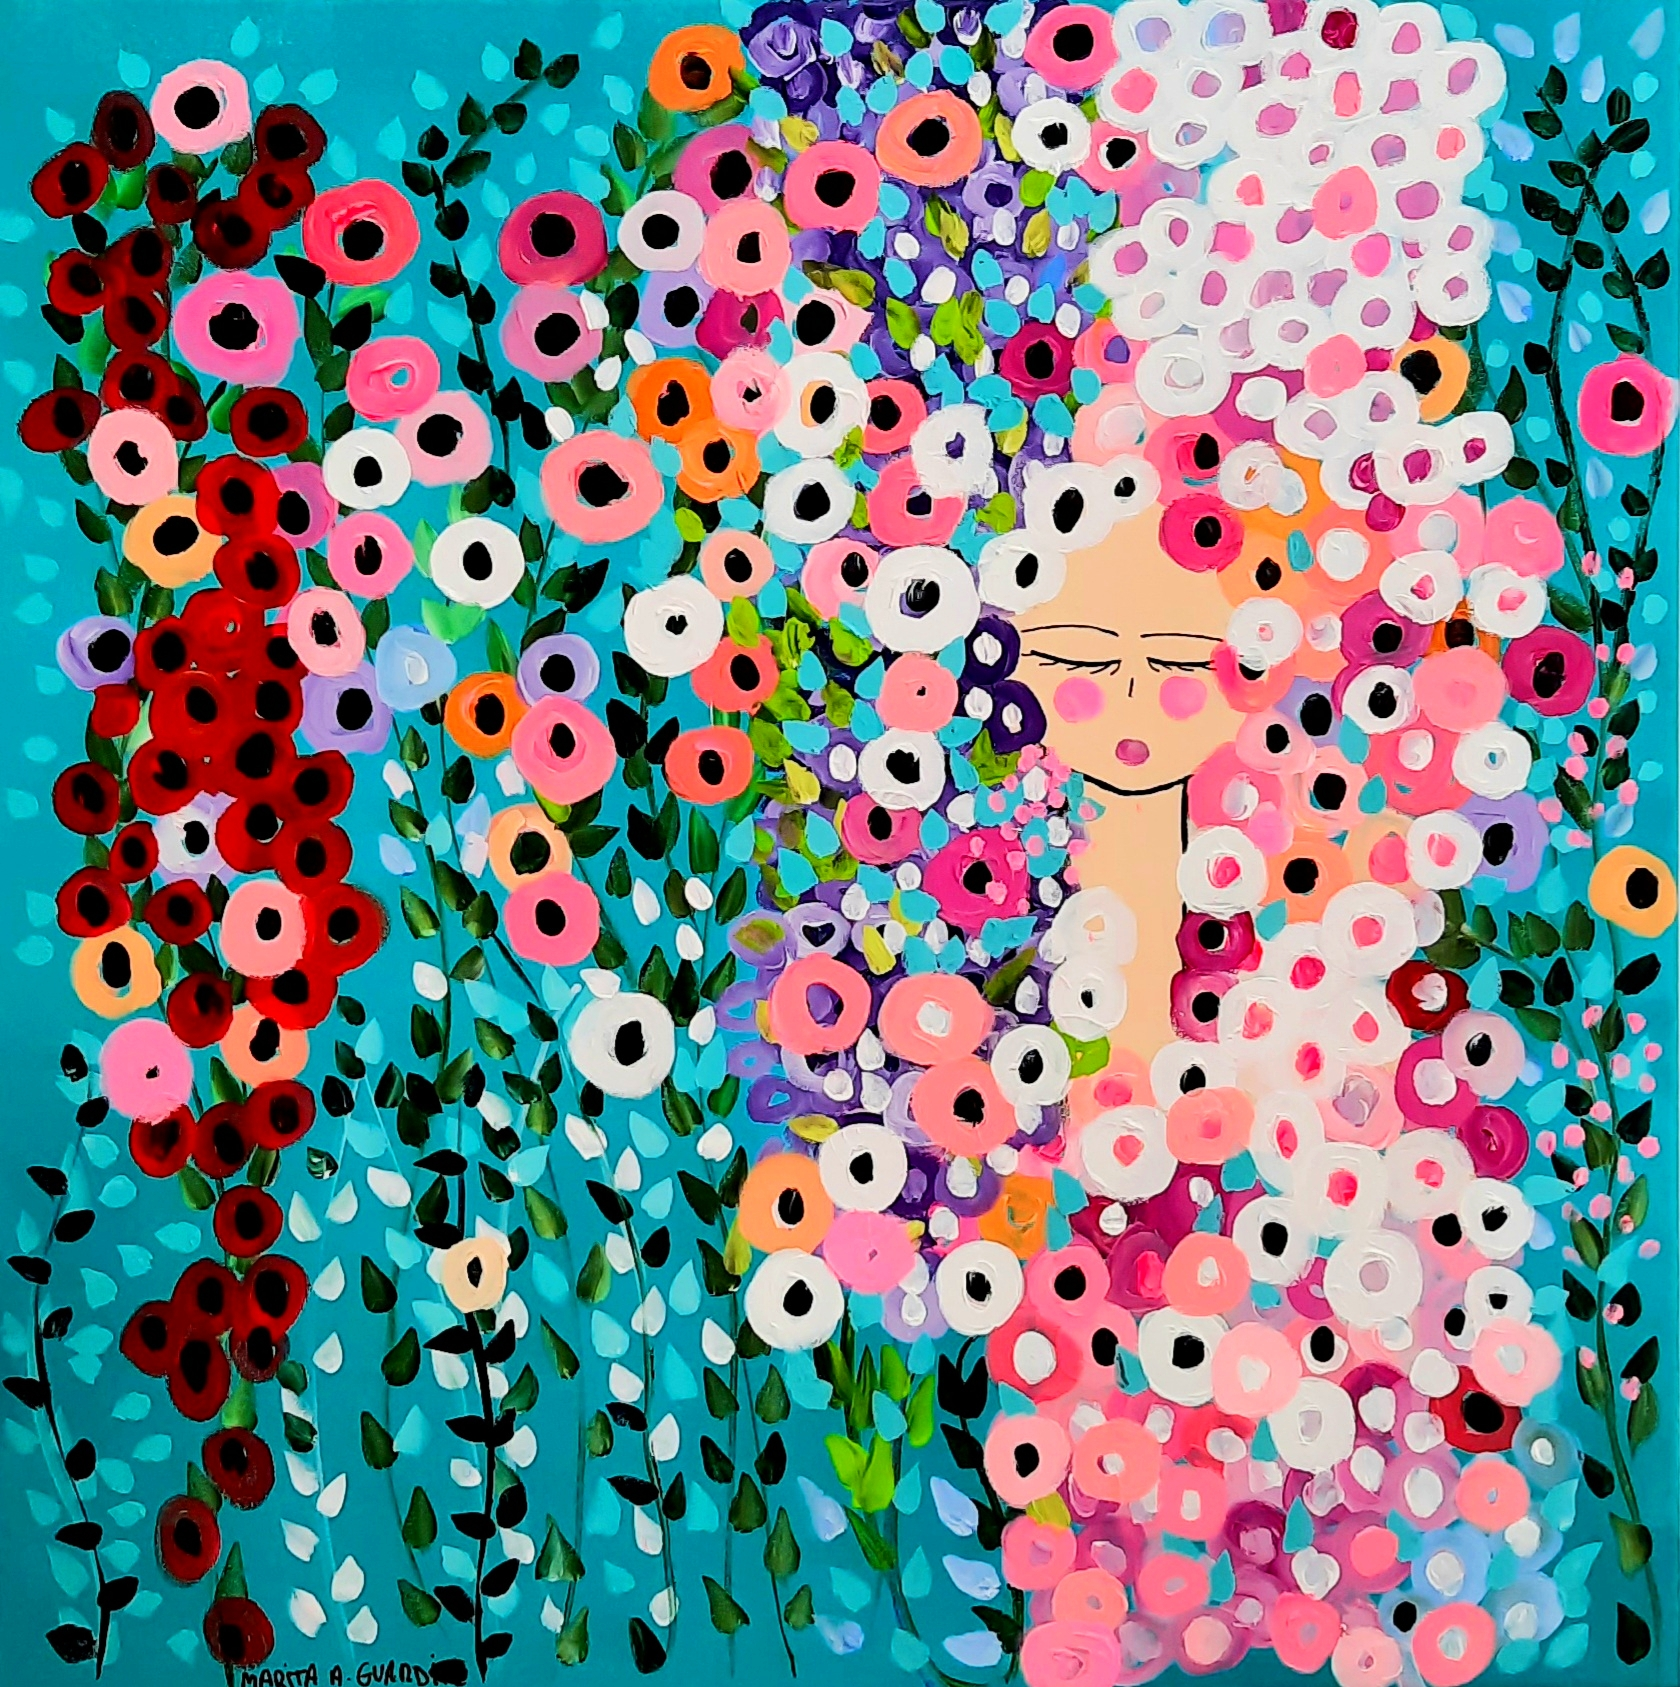 BEHIND OF THE FLOWERS- 90x90cm